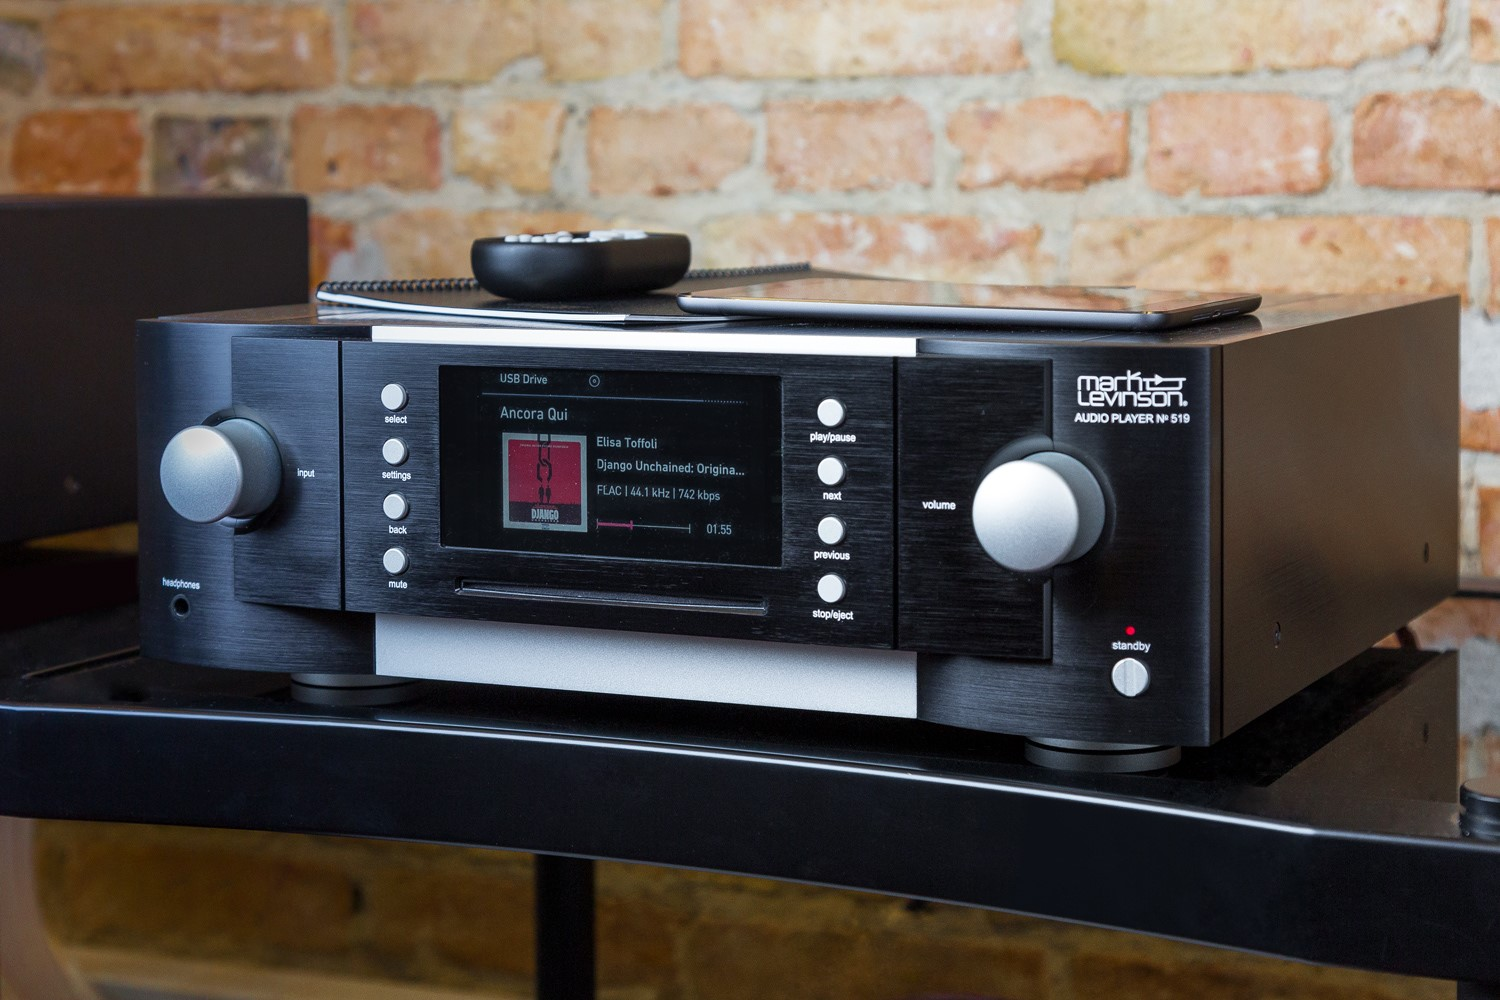 Der Mark Levinson No. 519 in Aktion